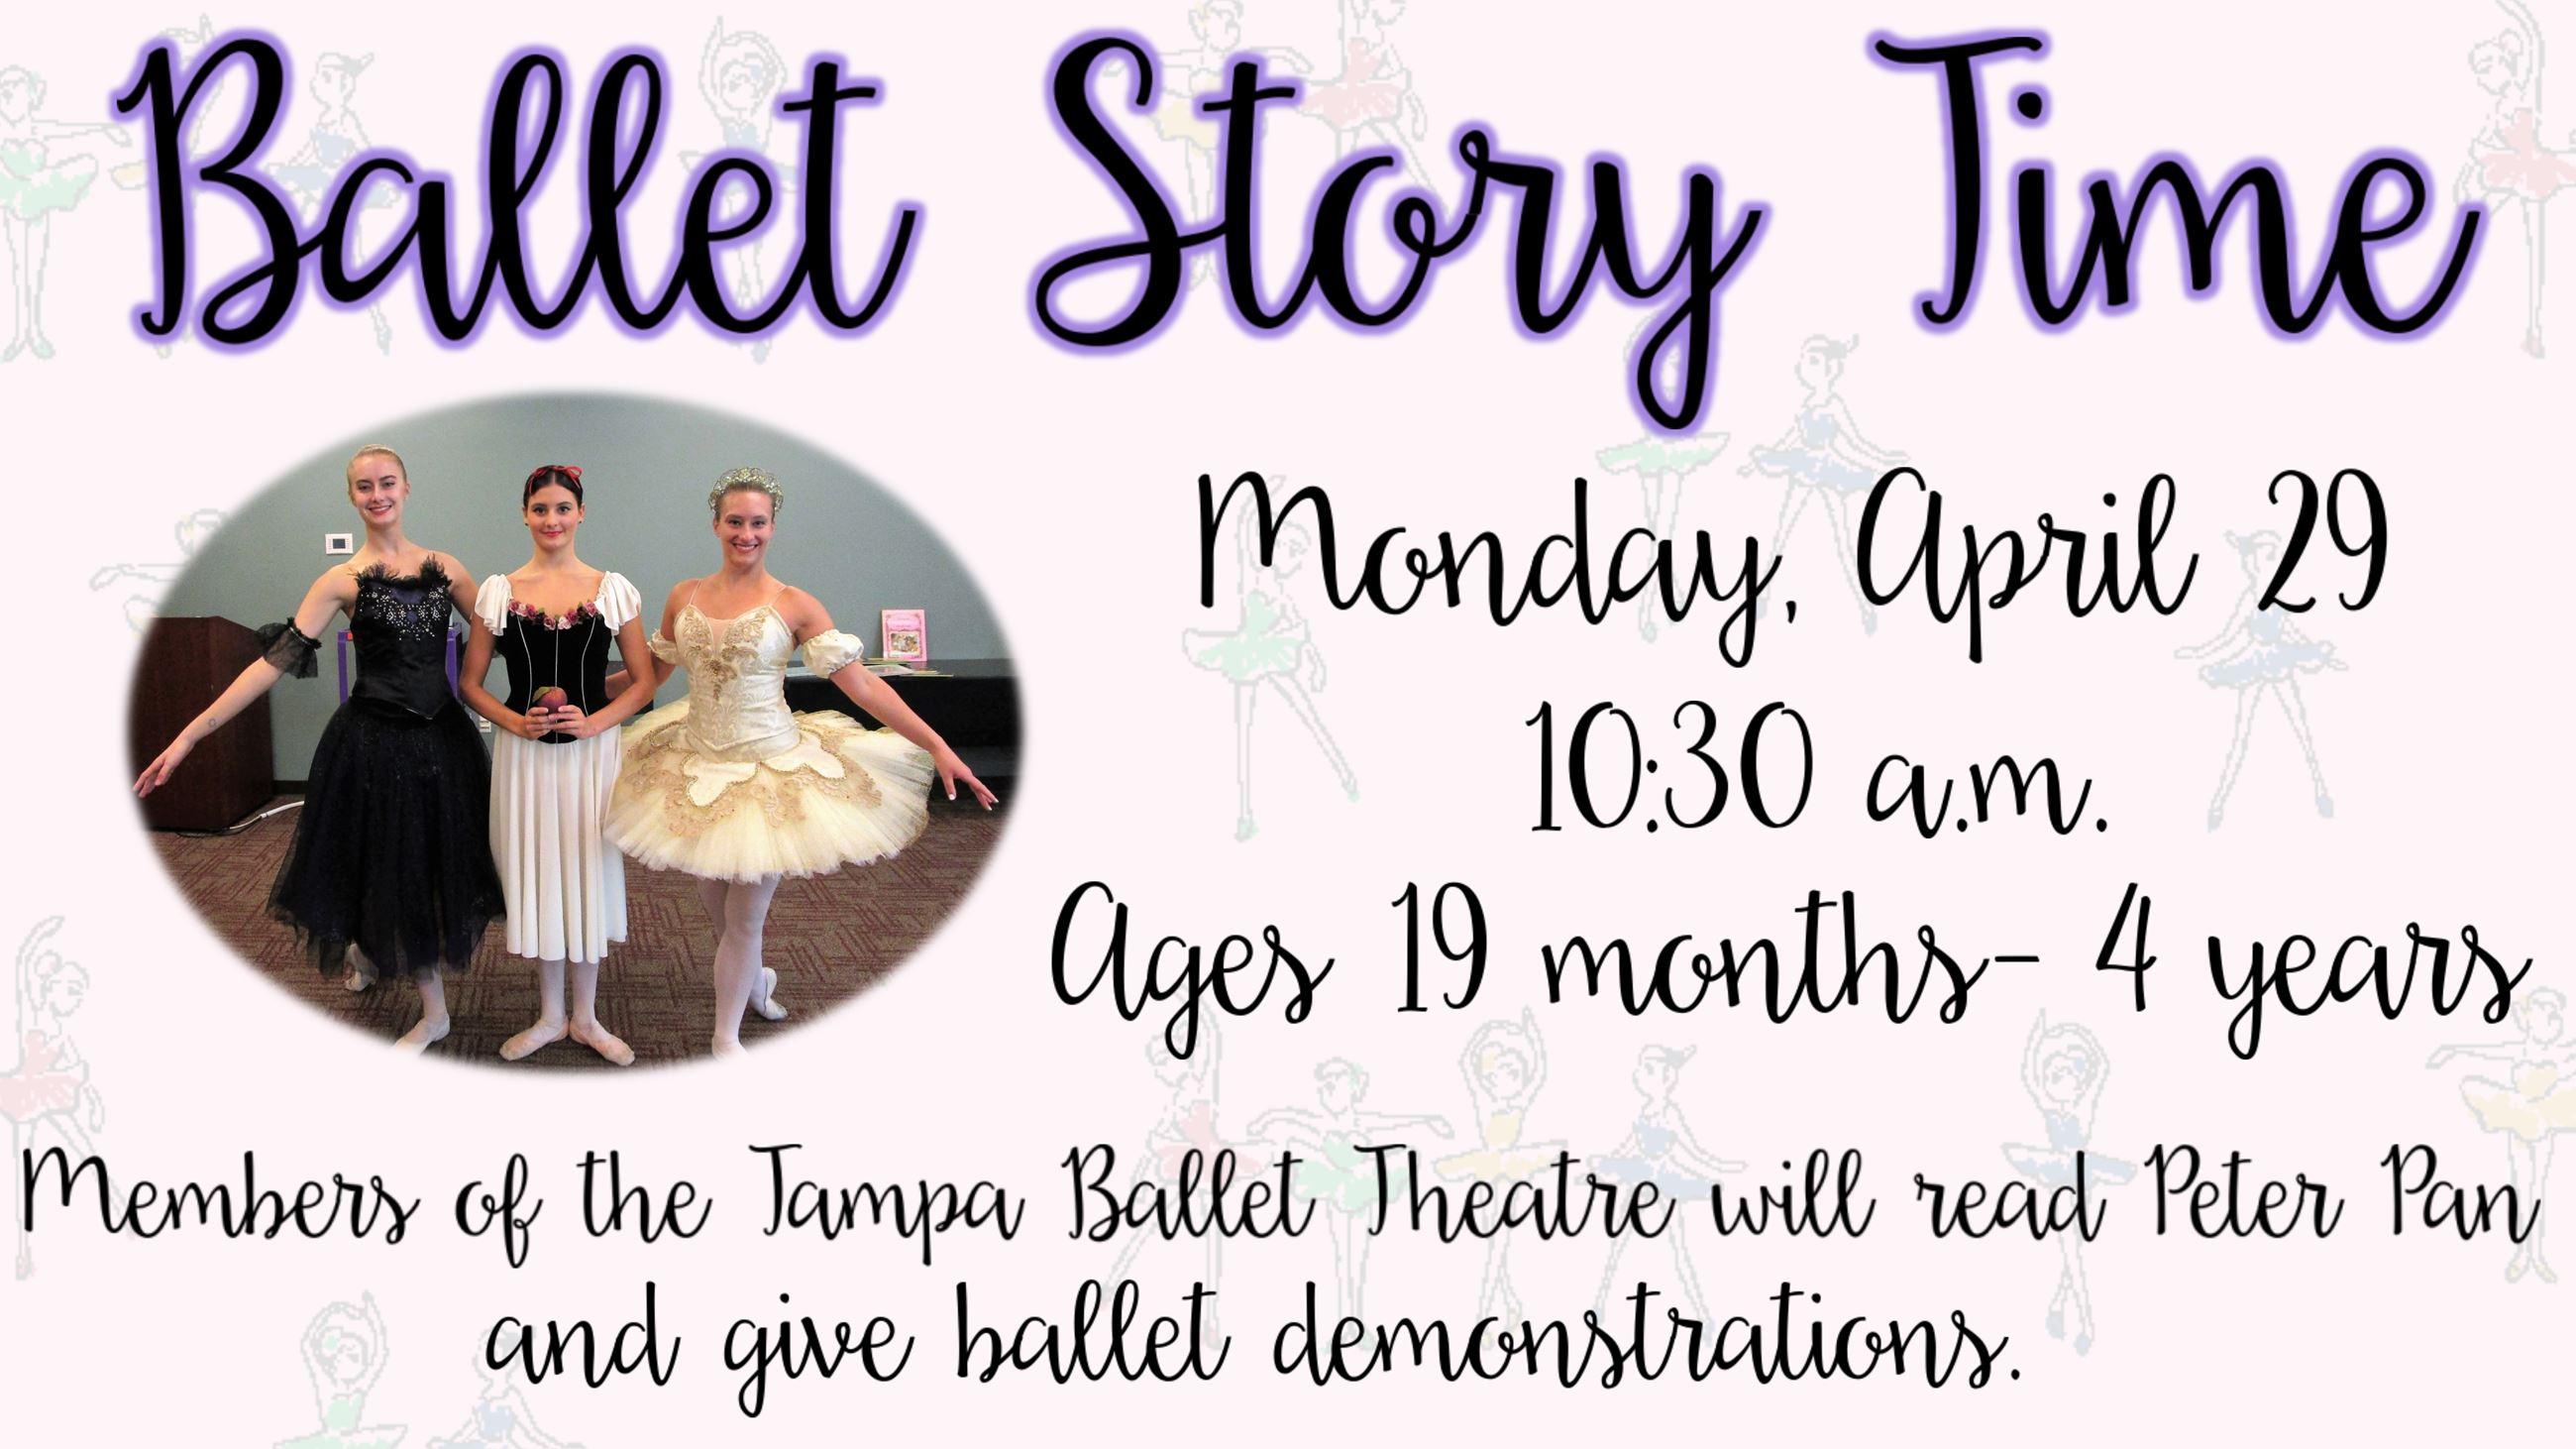 Ballet Story Time. April 29, 10:30 a.m. Ages 19 months to 4 years. Tampa Ballet Theatre members will